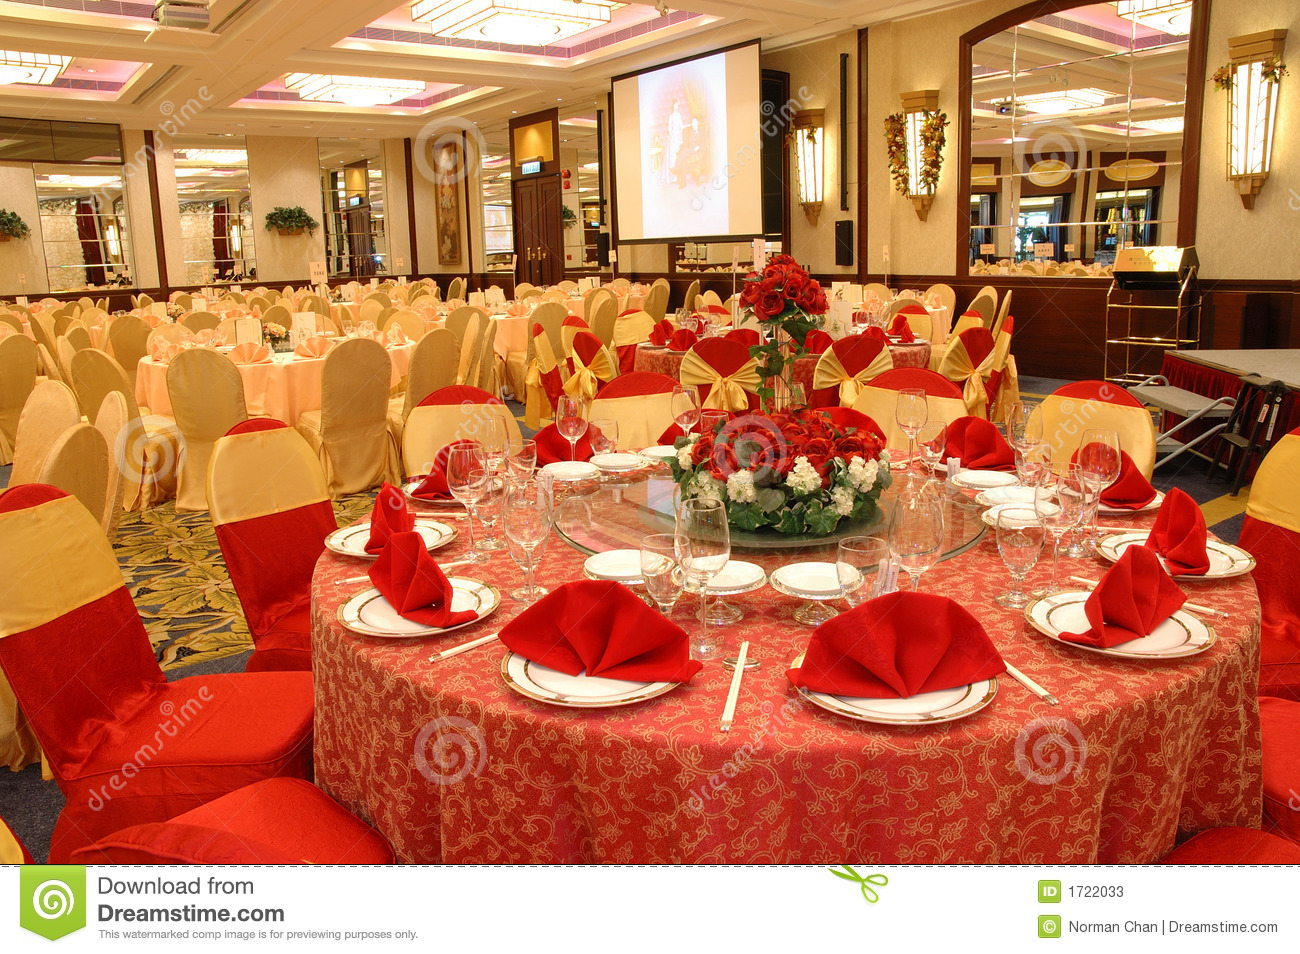 Table setting in wedding banquet stock image